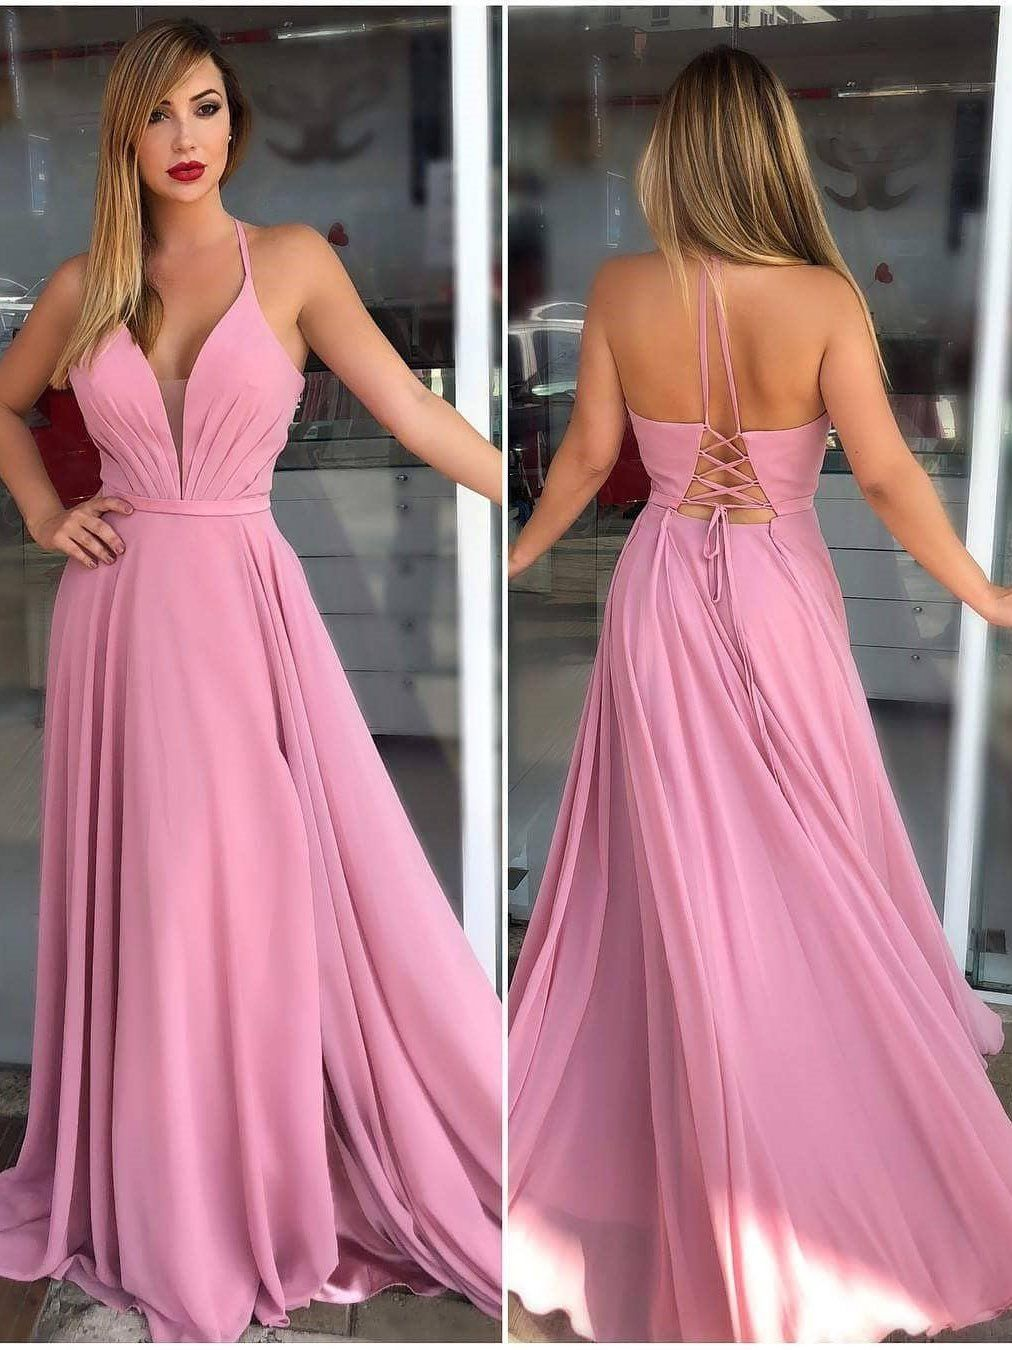 Spaghetti strap halter dusty rose prom dresses cheap backelss formal